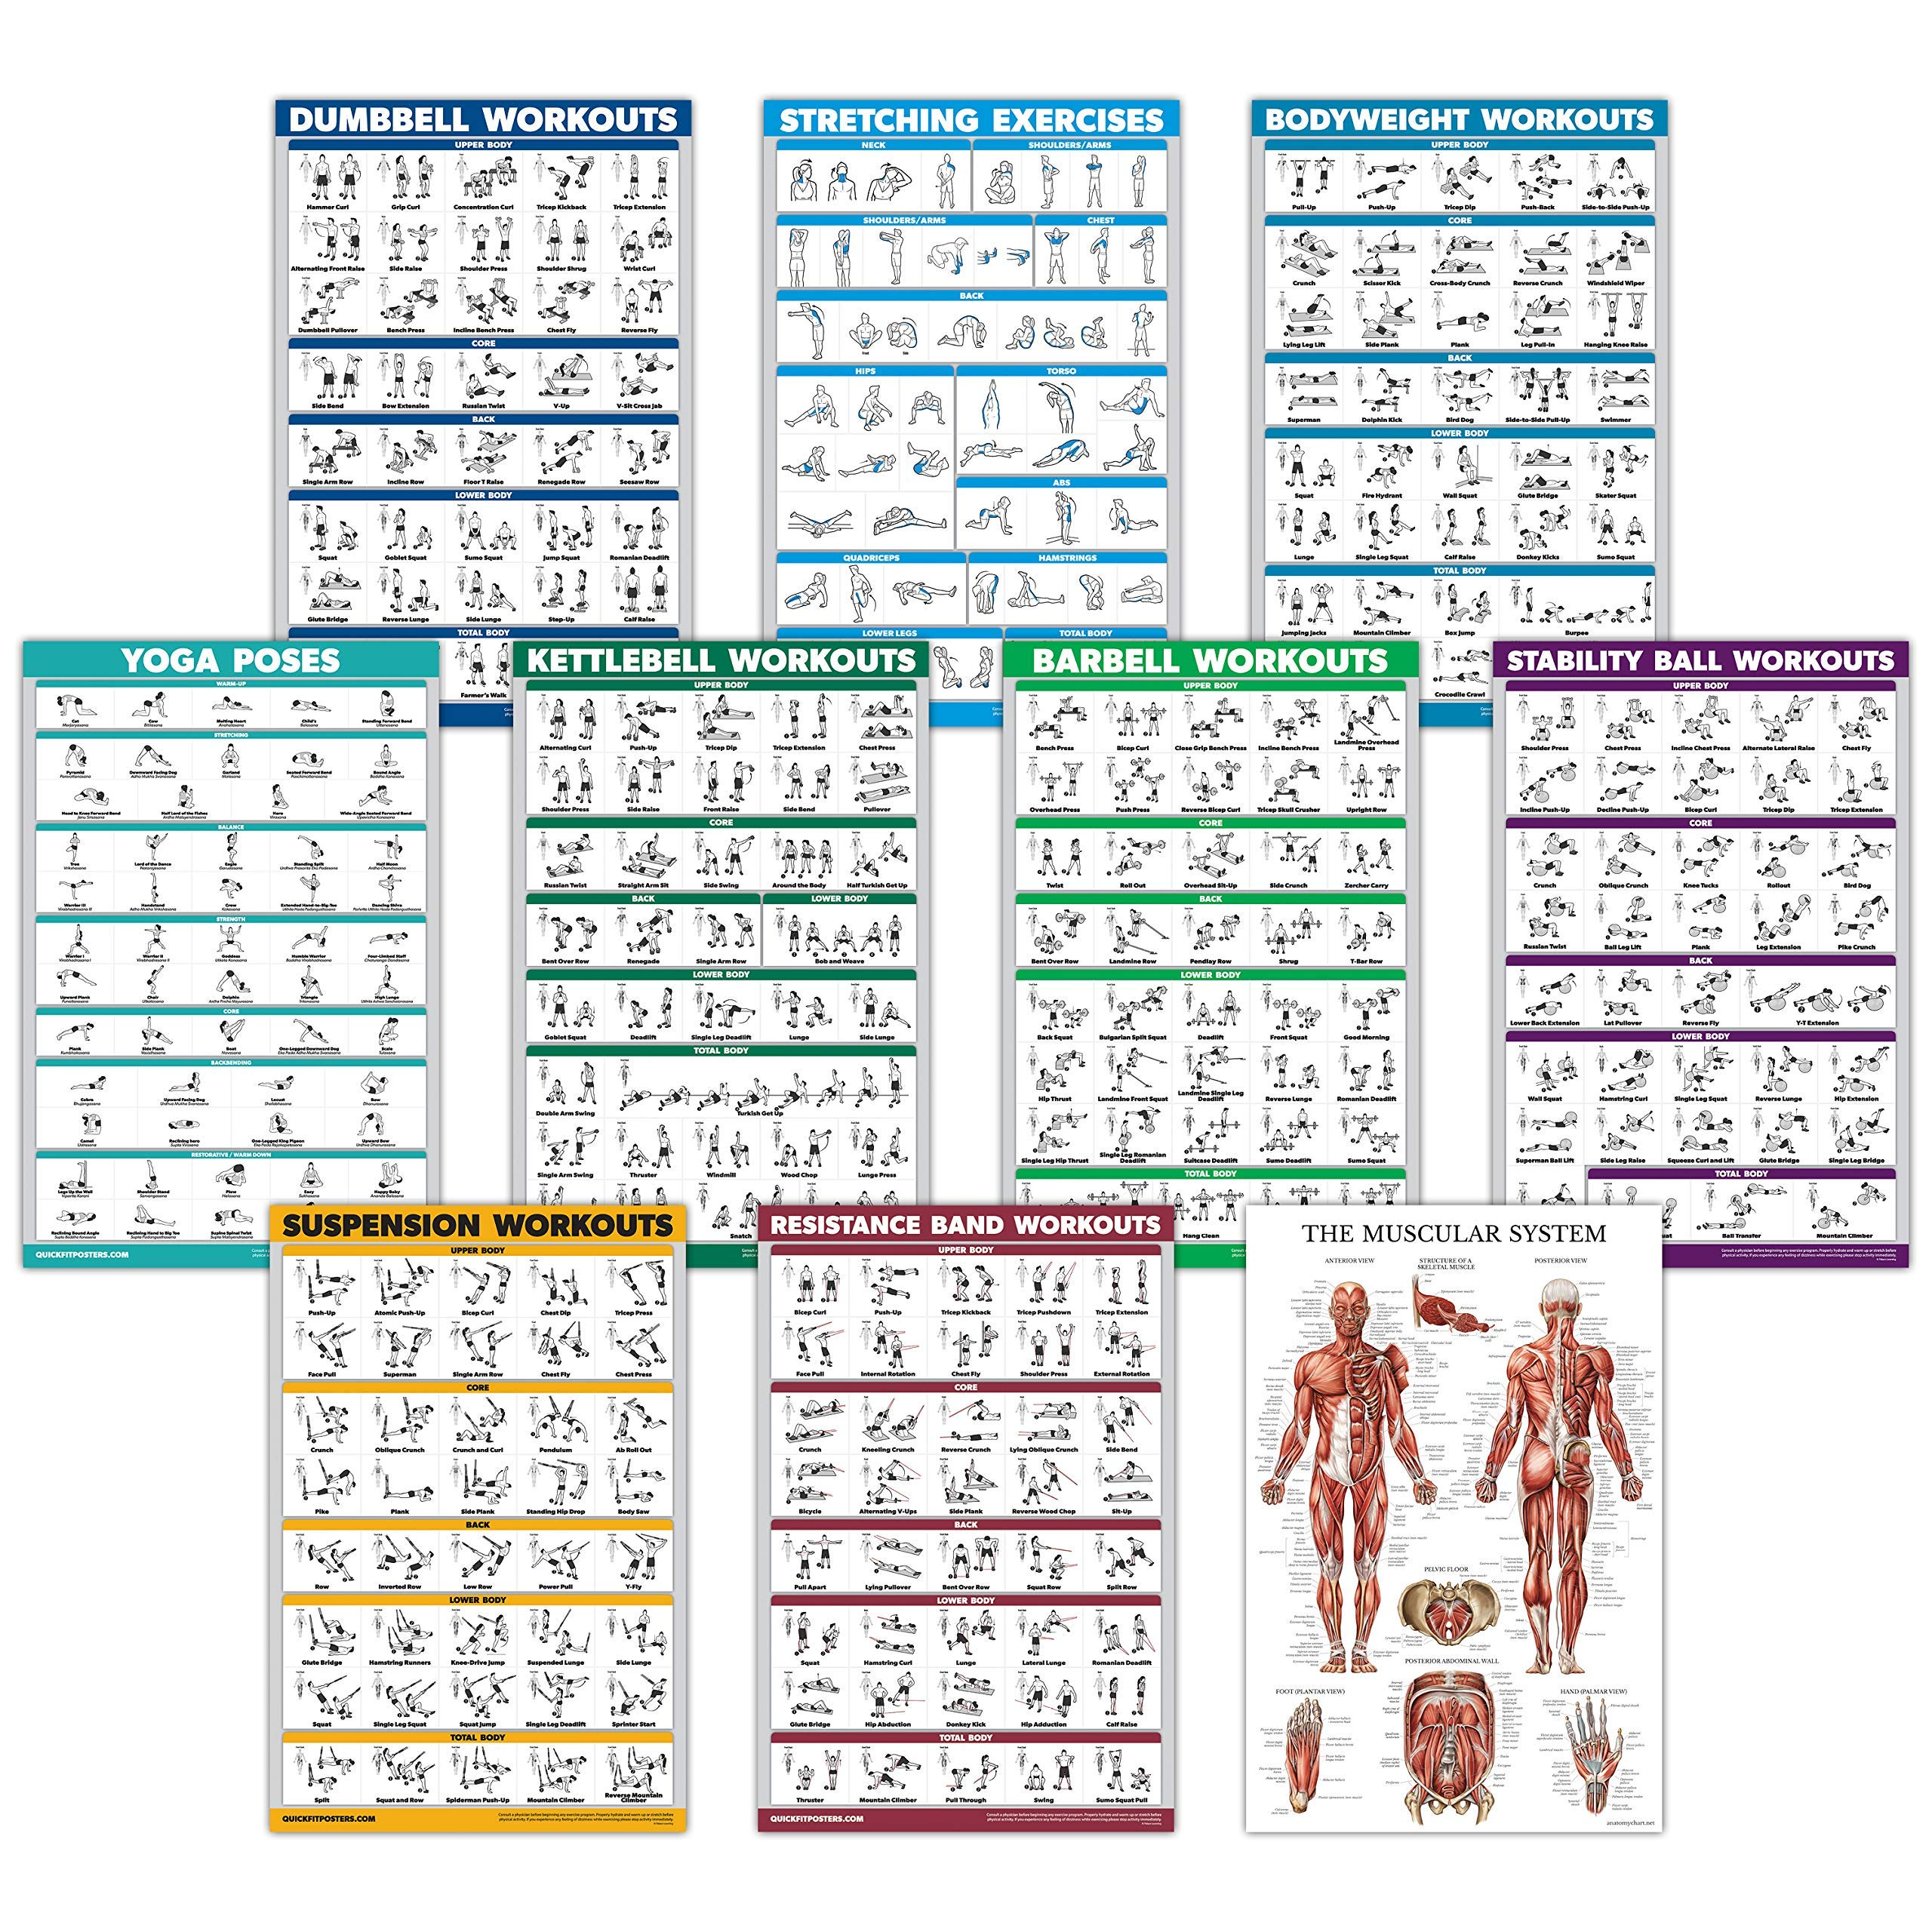 10 Pack - Exercise Workout Poster Set - Dumbbell, Suspension, Kettlebell, Resistance Bands, Stretching, Bodyweight, Barbell, Yoga Poses, Exercise Ball, Muscular System (PAPER, NON LAMINATED,18'' x 27'')